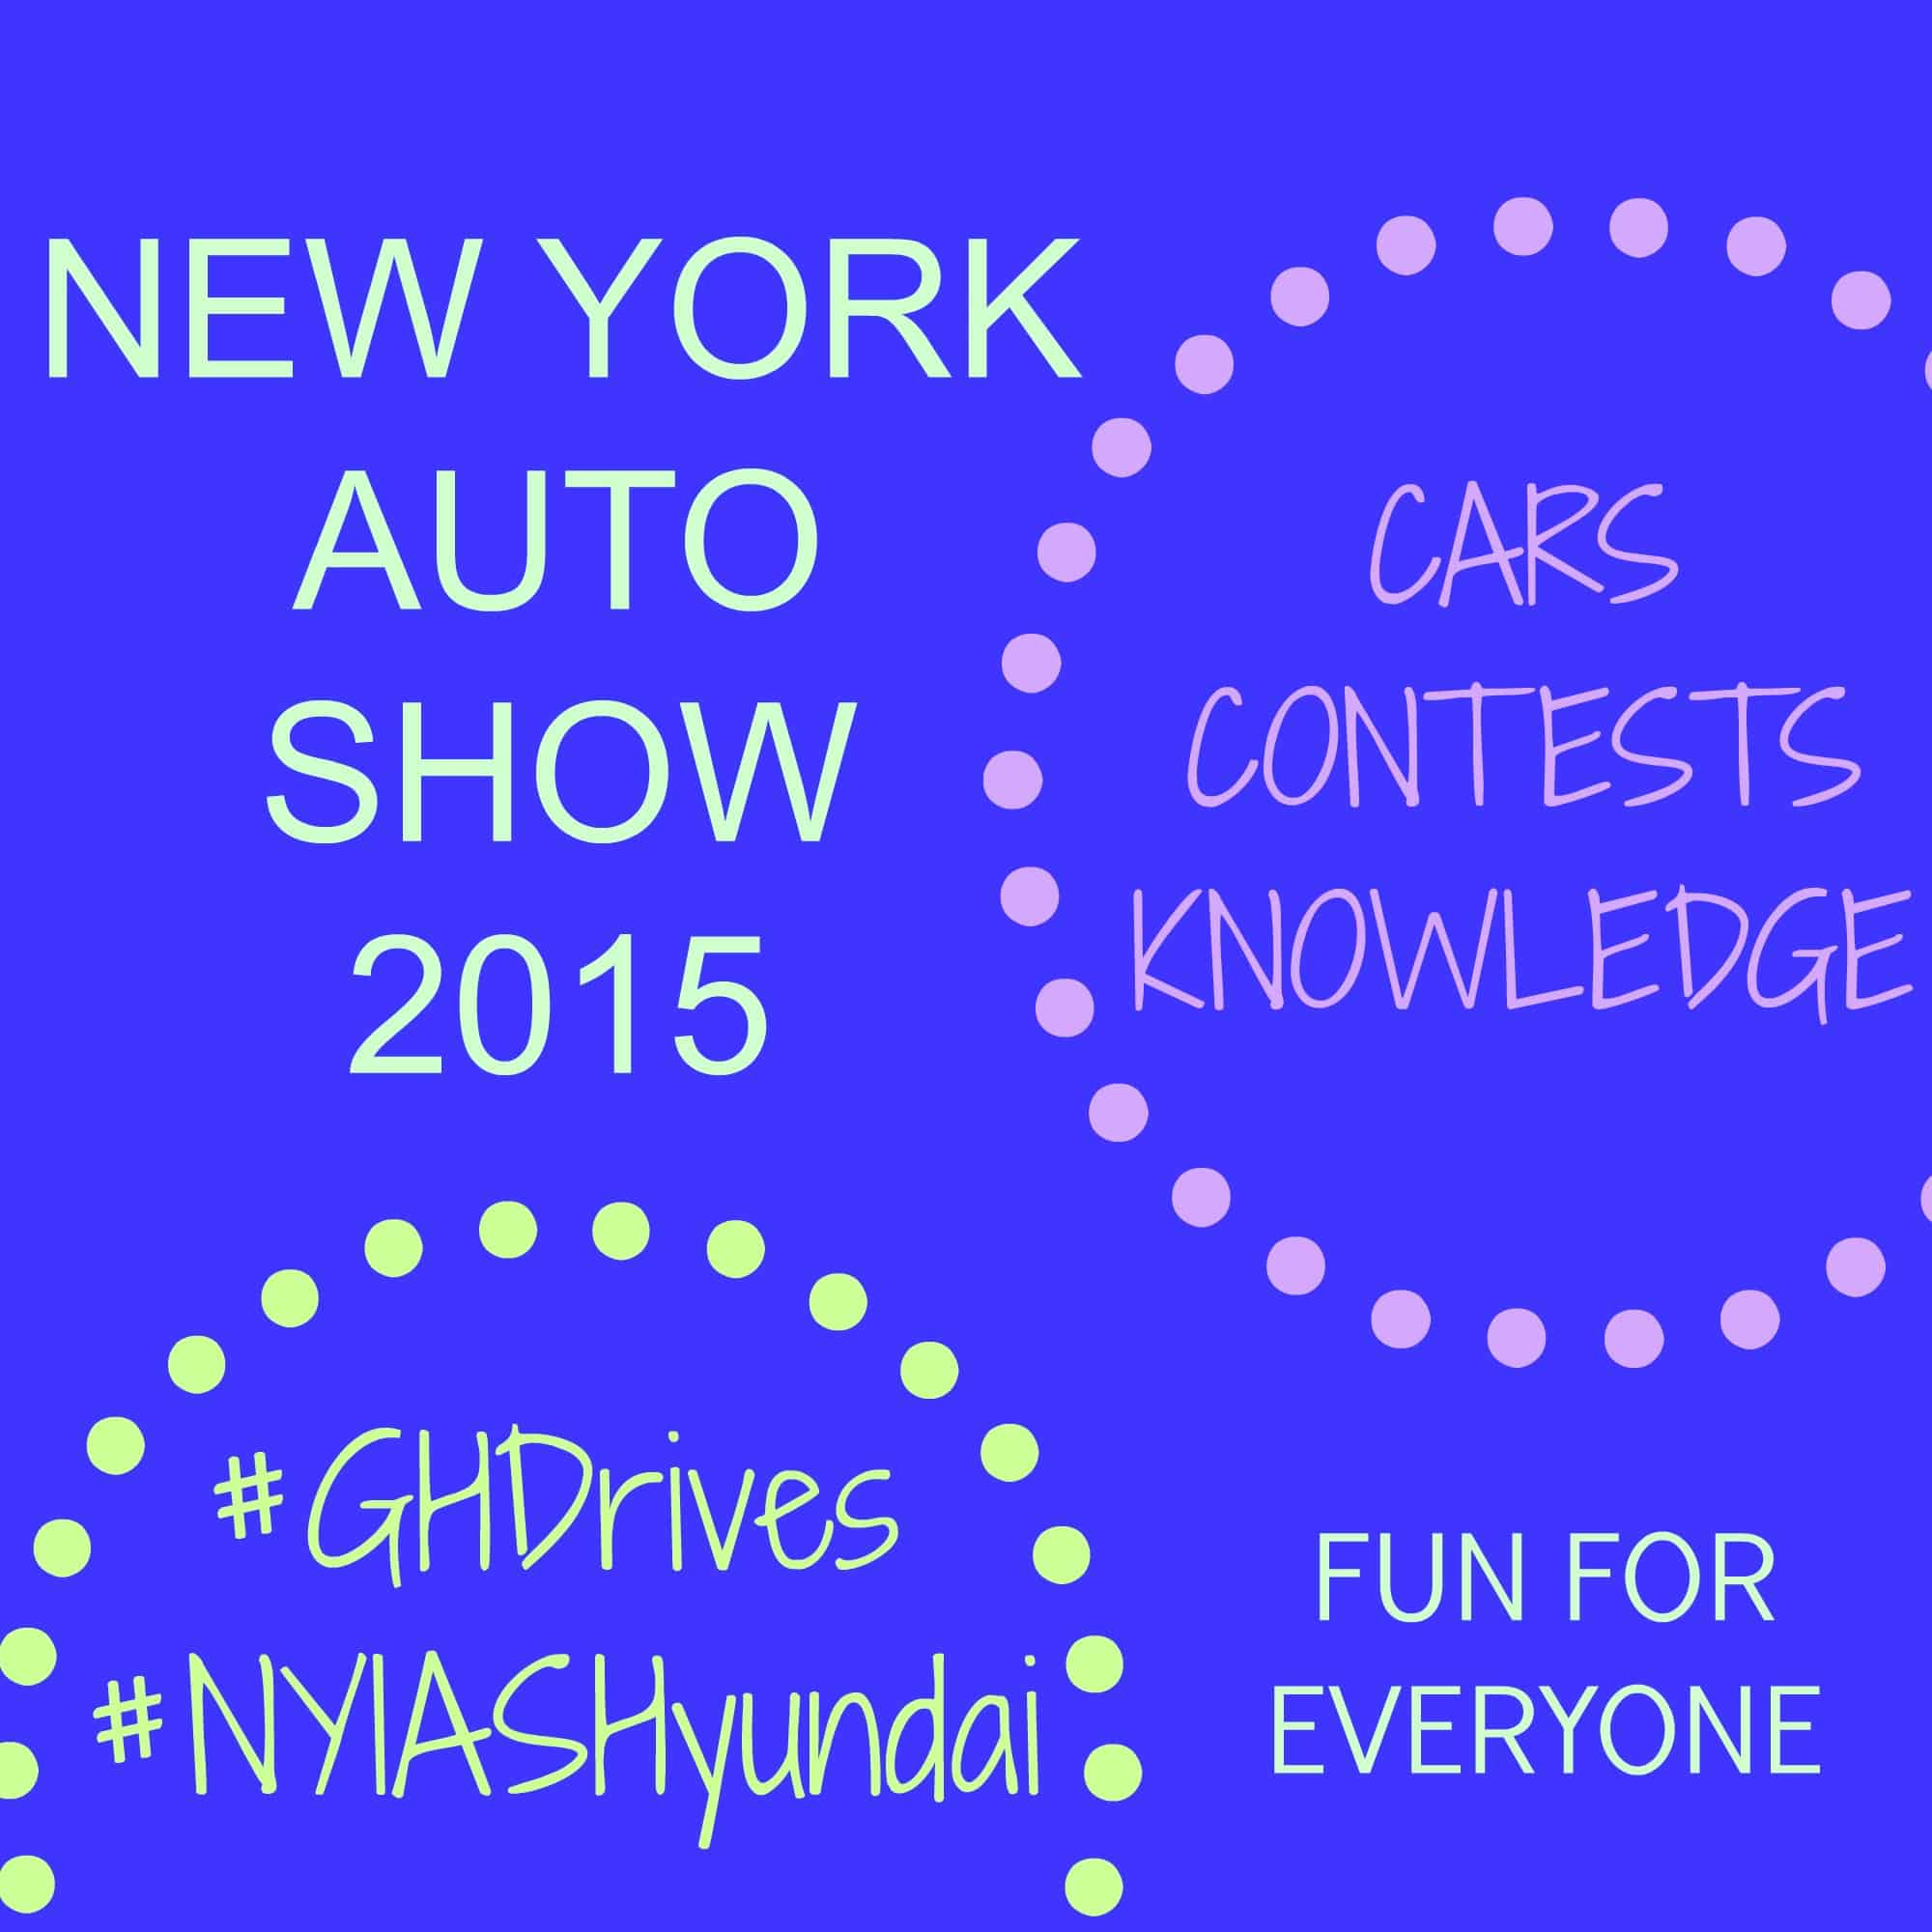 Hyundai & Good Housekeeping Contest at the New York Auto Show